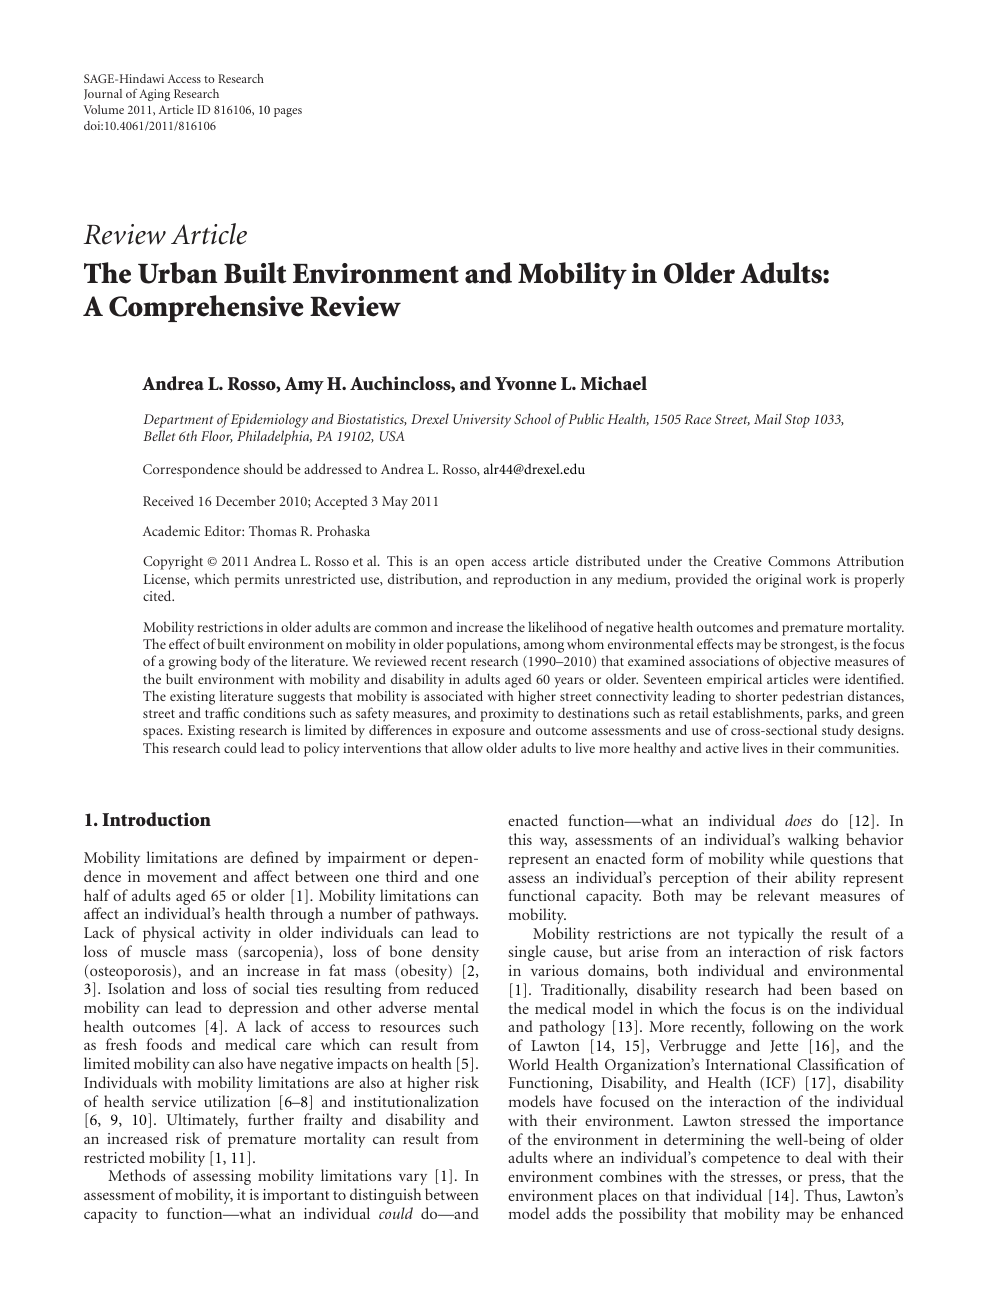 The Urban Built Environment and Mobility in Older Adults: A